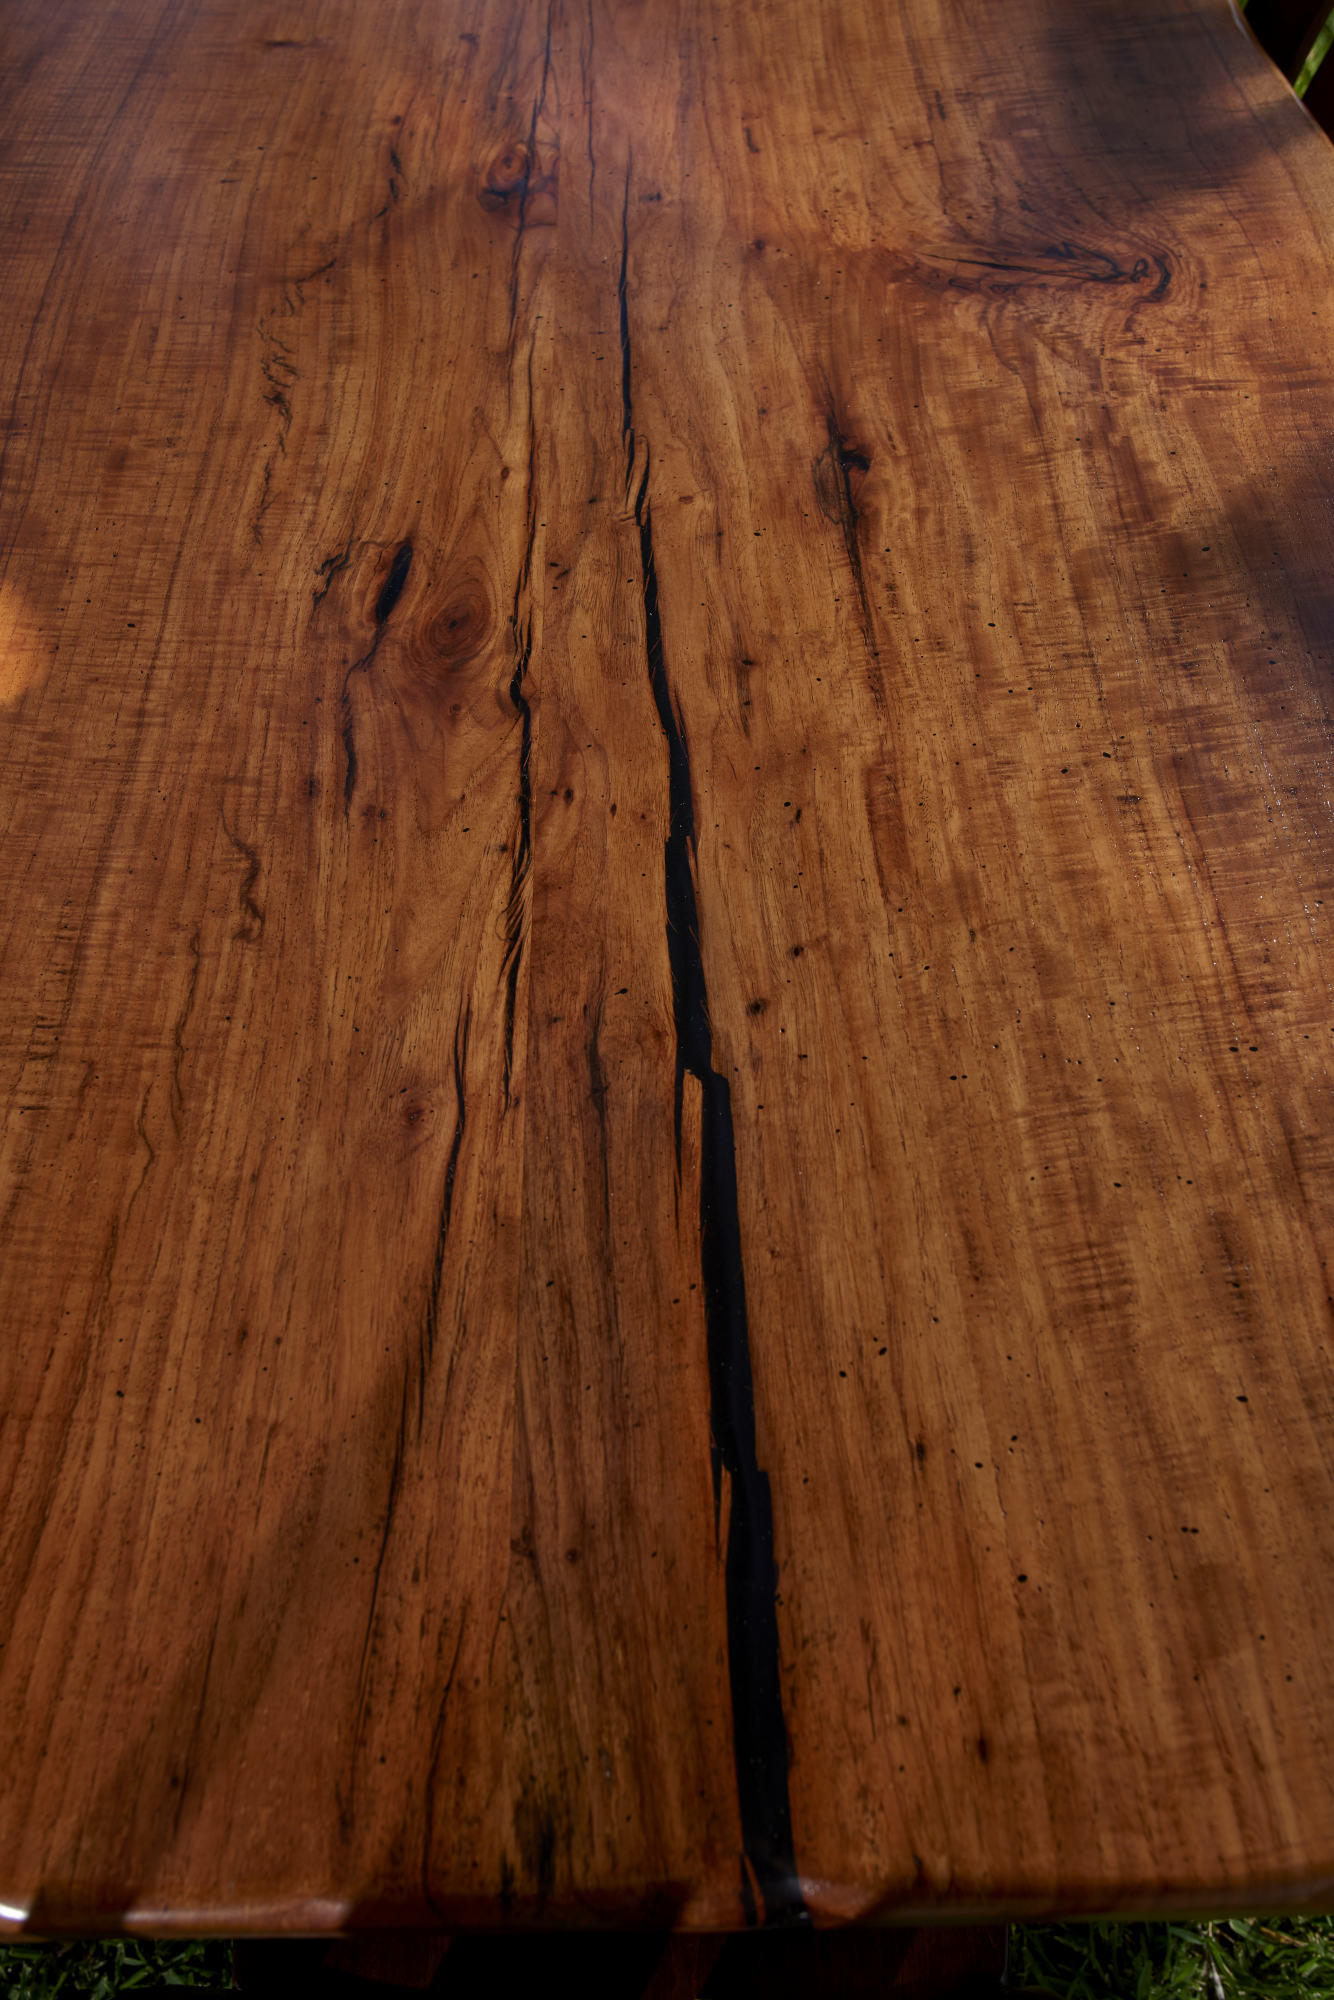 Rustic Furniture Product Photography of One of a kind pecan table top.